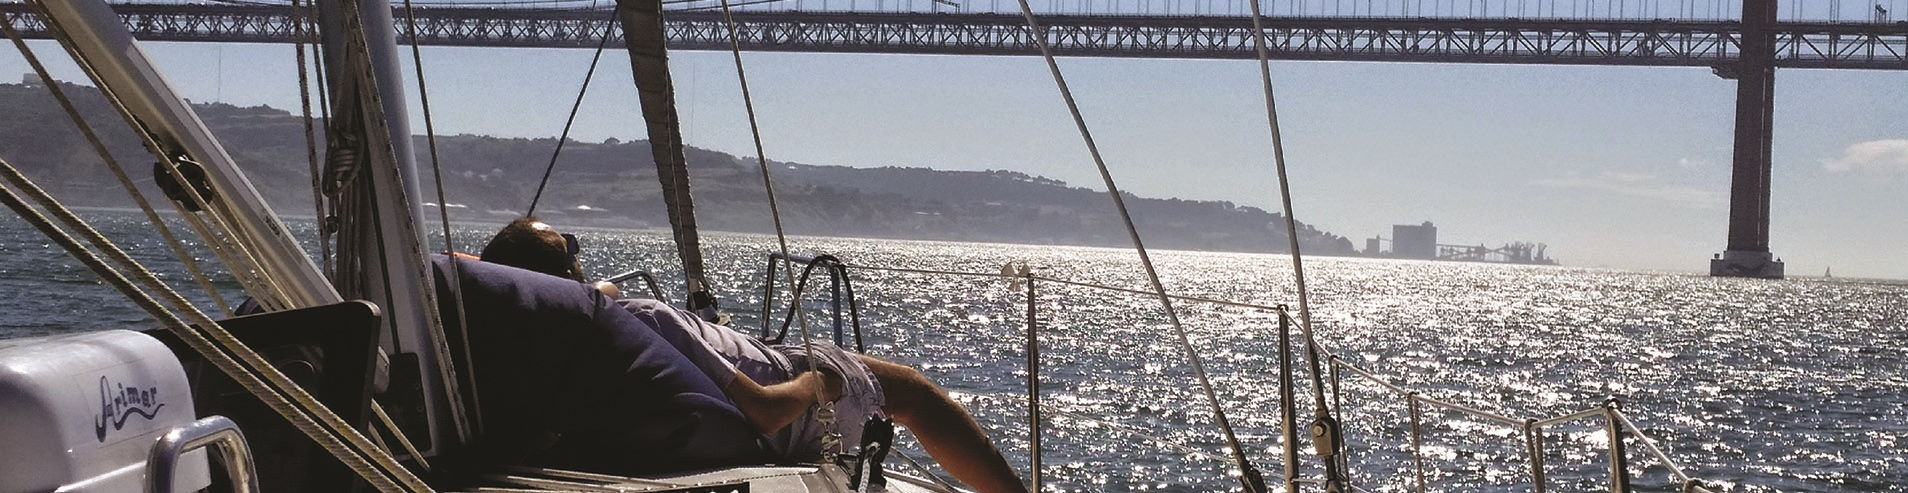 Relax on a sailboat in Lisbon